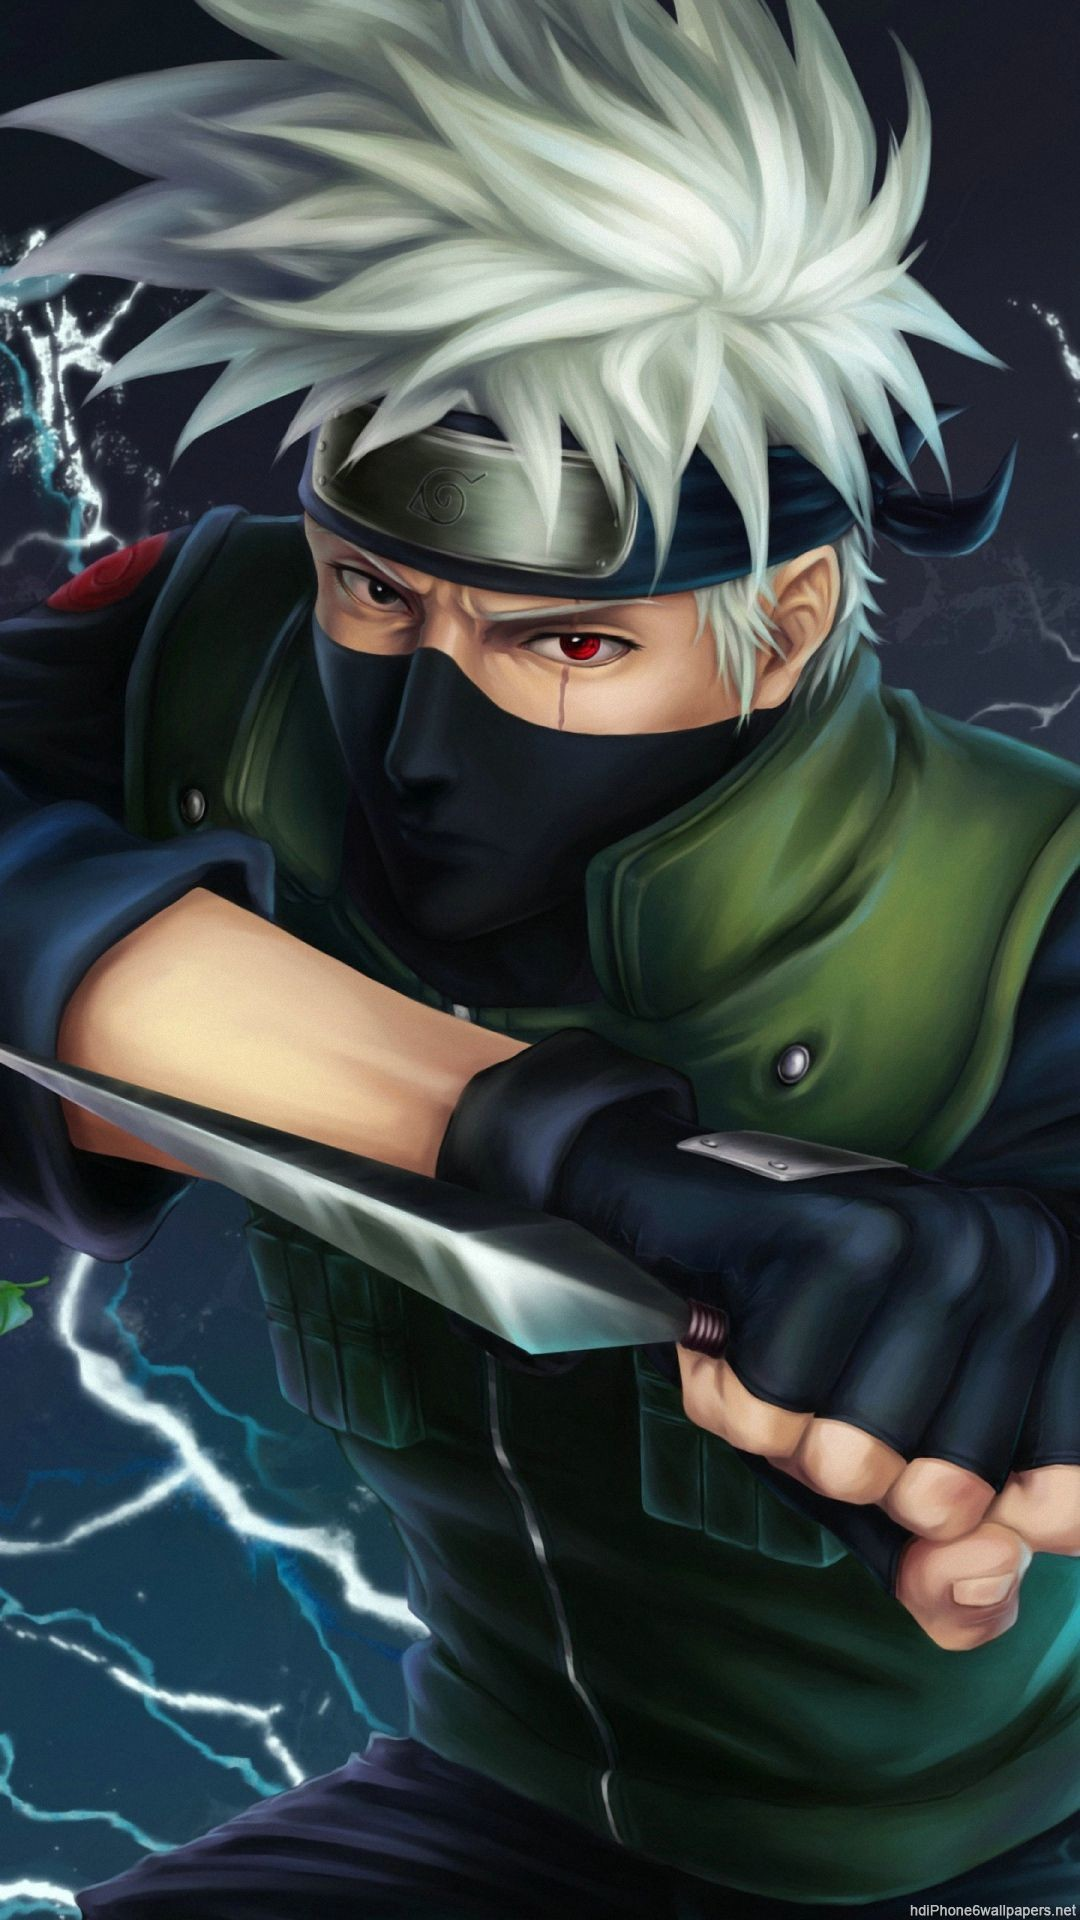 Naruto Shippuden Cell Phone Wallpaper 2018 61 Pictures